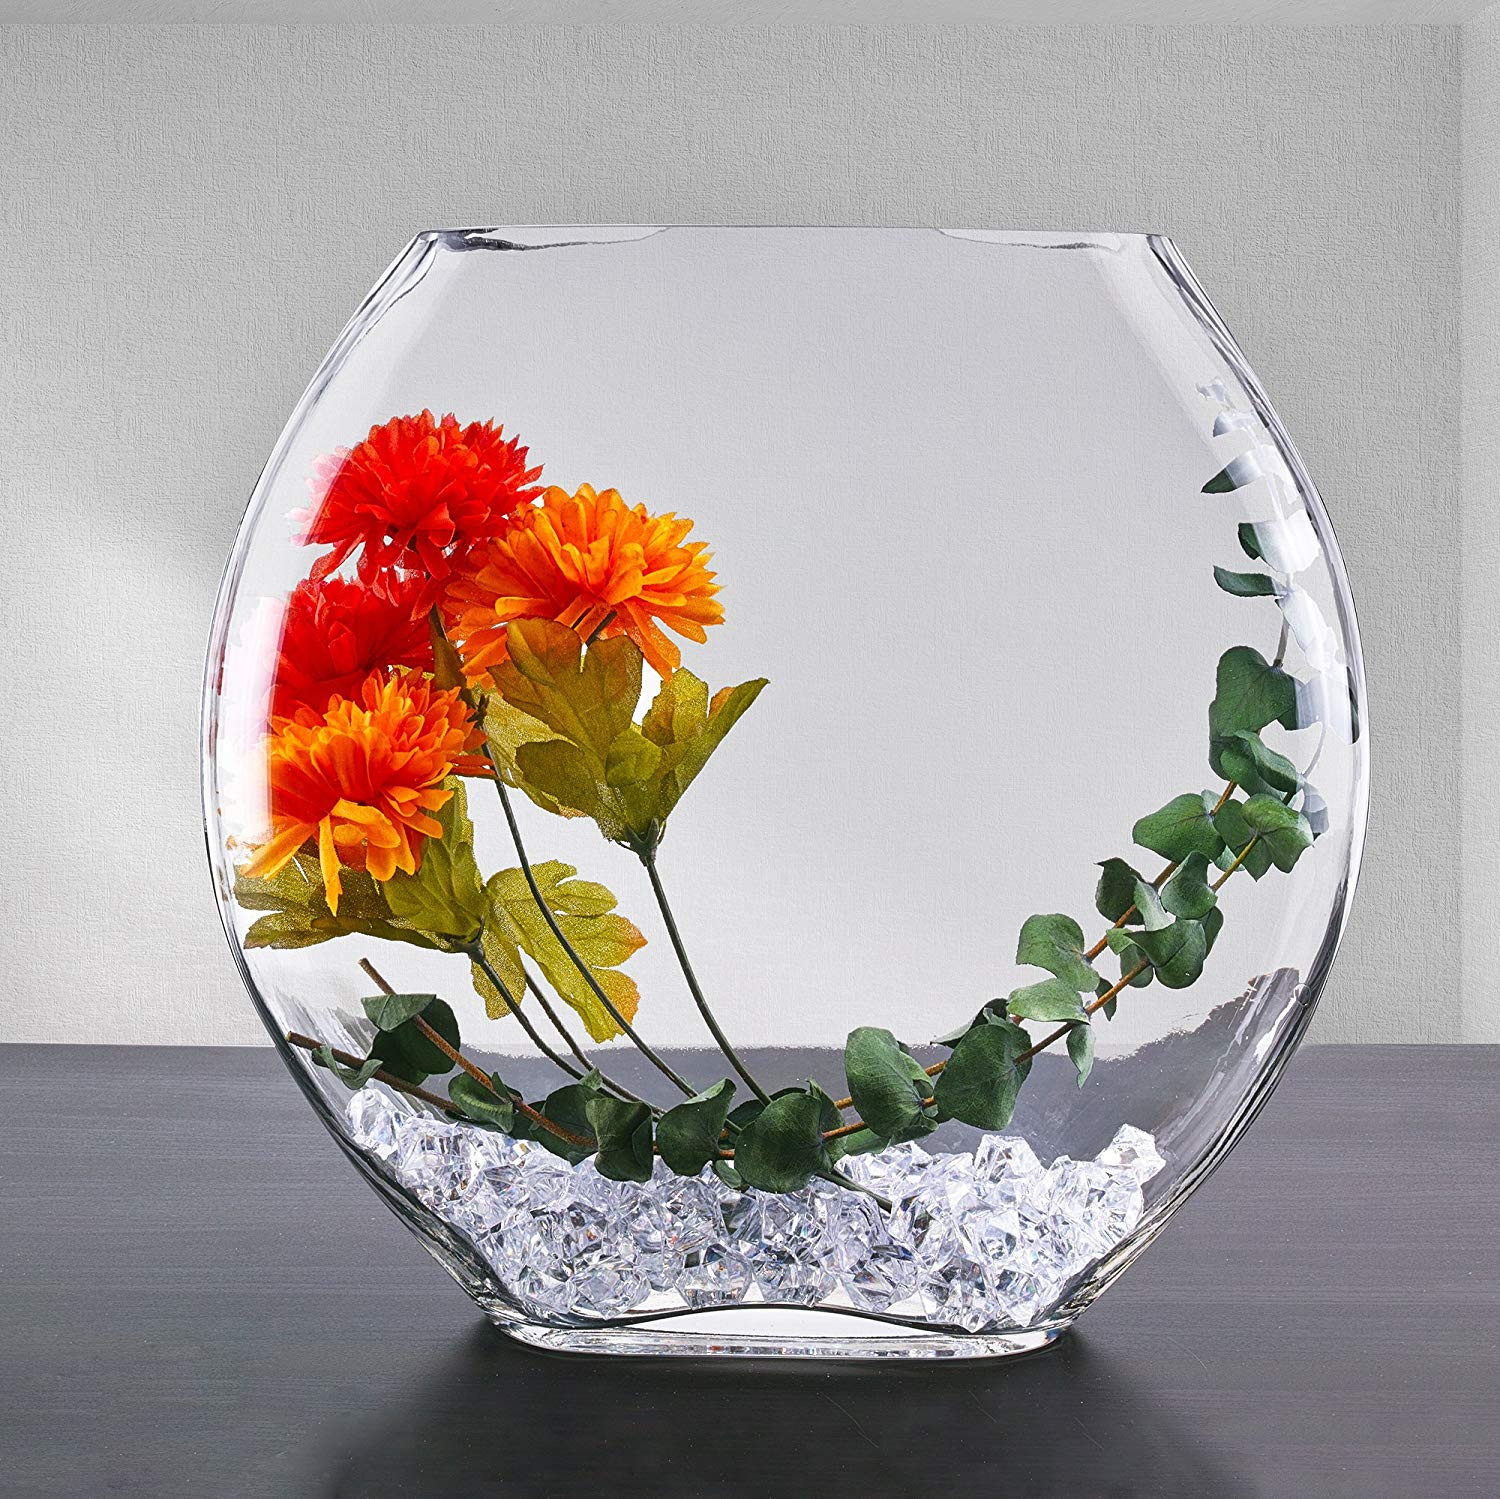 4x4 glass cube vase of amazon com cys excel oval vase moon shape glass vase moon shape with regard to amazon com cys excel oval vase moon shape glass vase moon shape h11 open 7 5 x 3 body d11 5 1 pc home kitchen